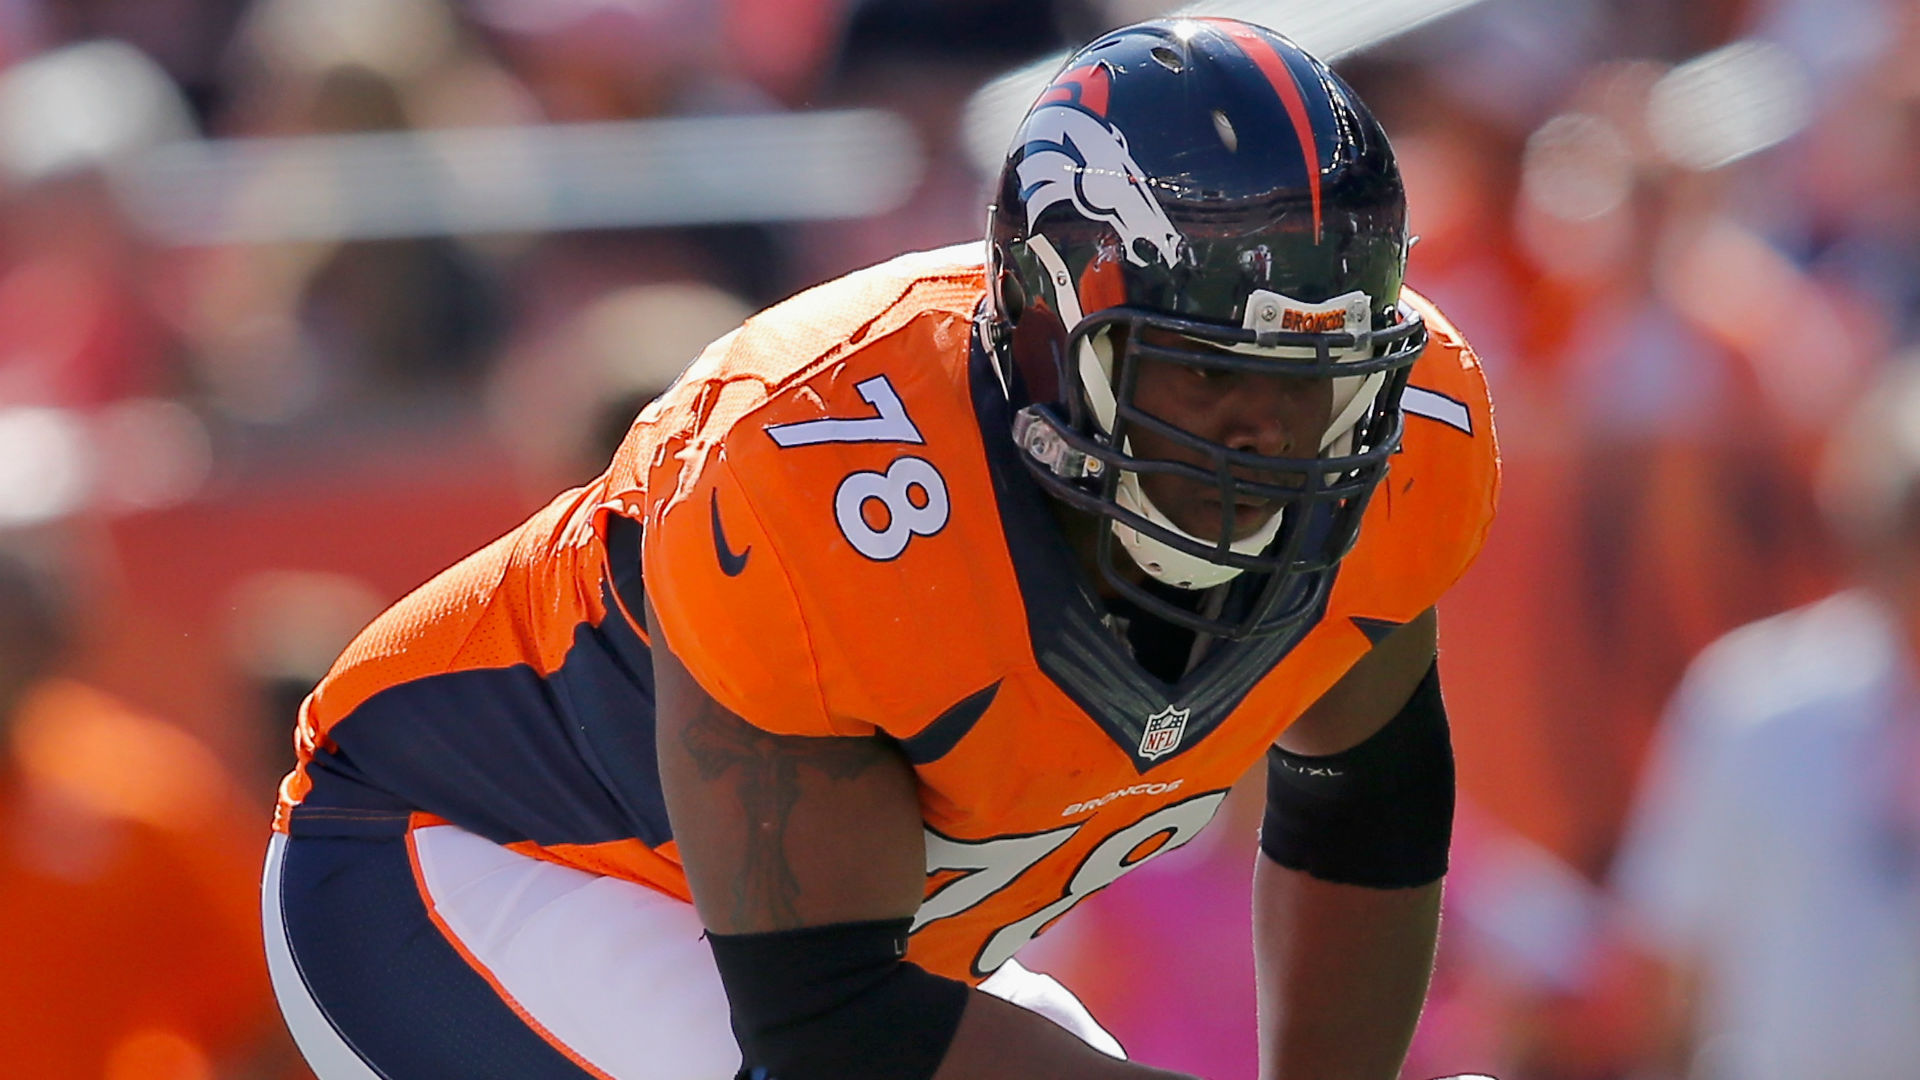 Ryan Clady, former Broncos tackle, announces retirement from NFL